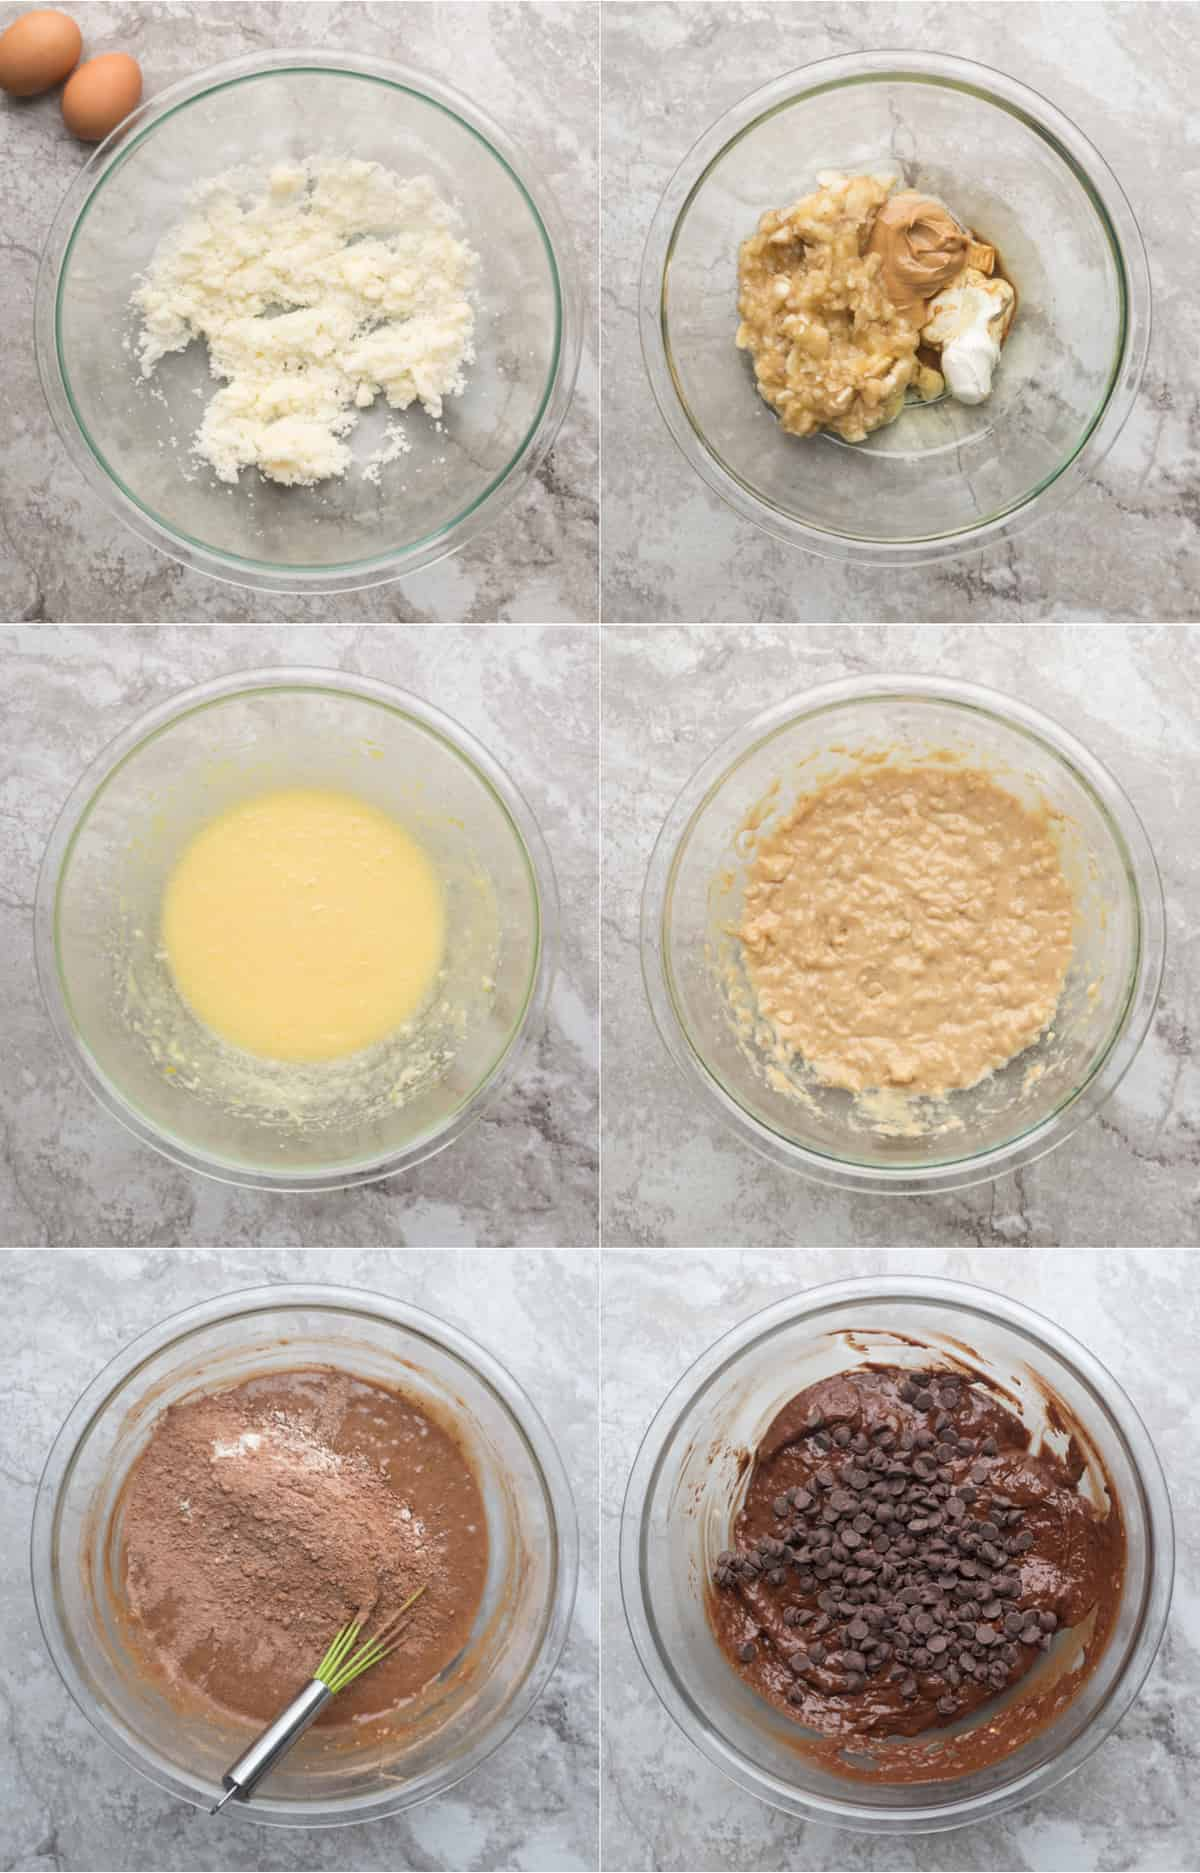 How to make chocolate chip banana bread recipe batter.